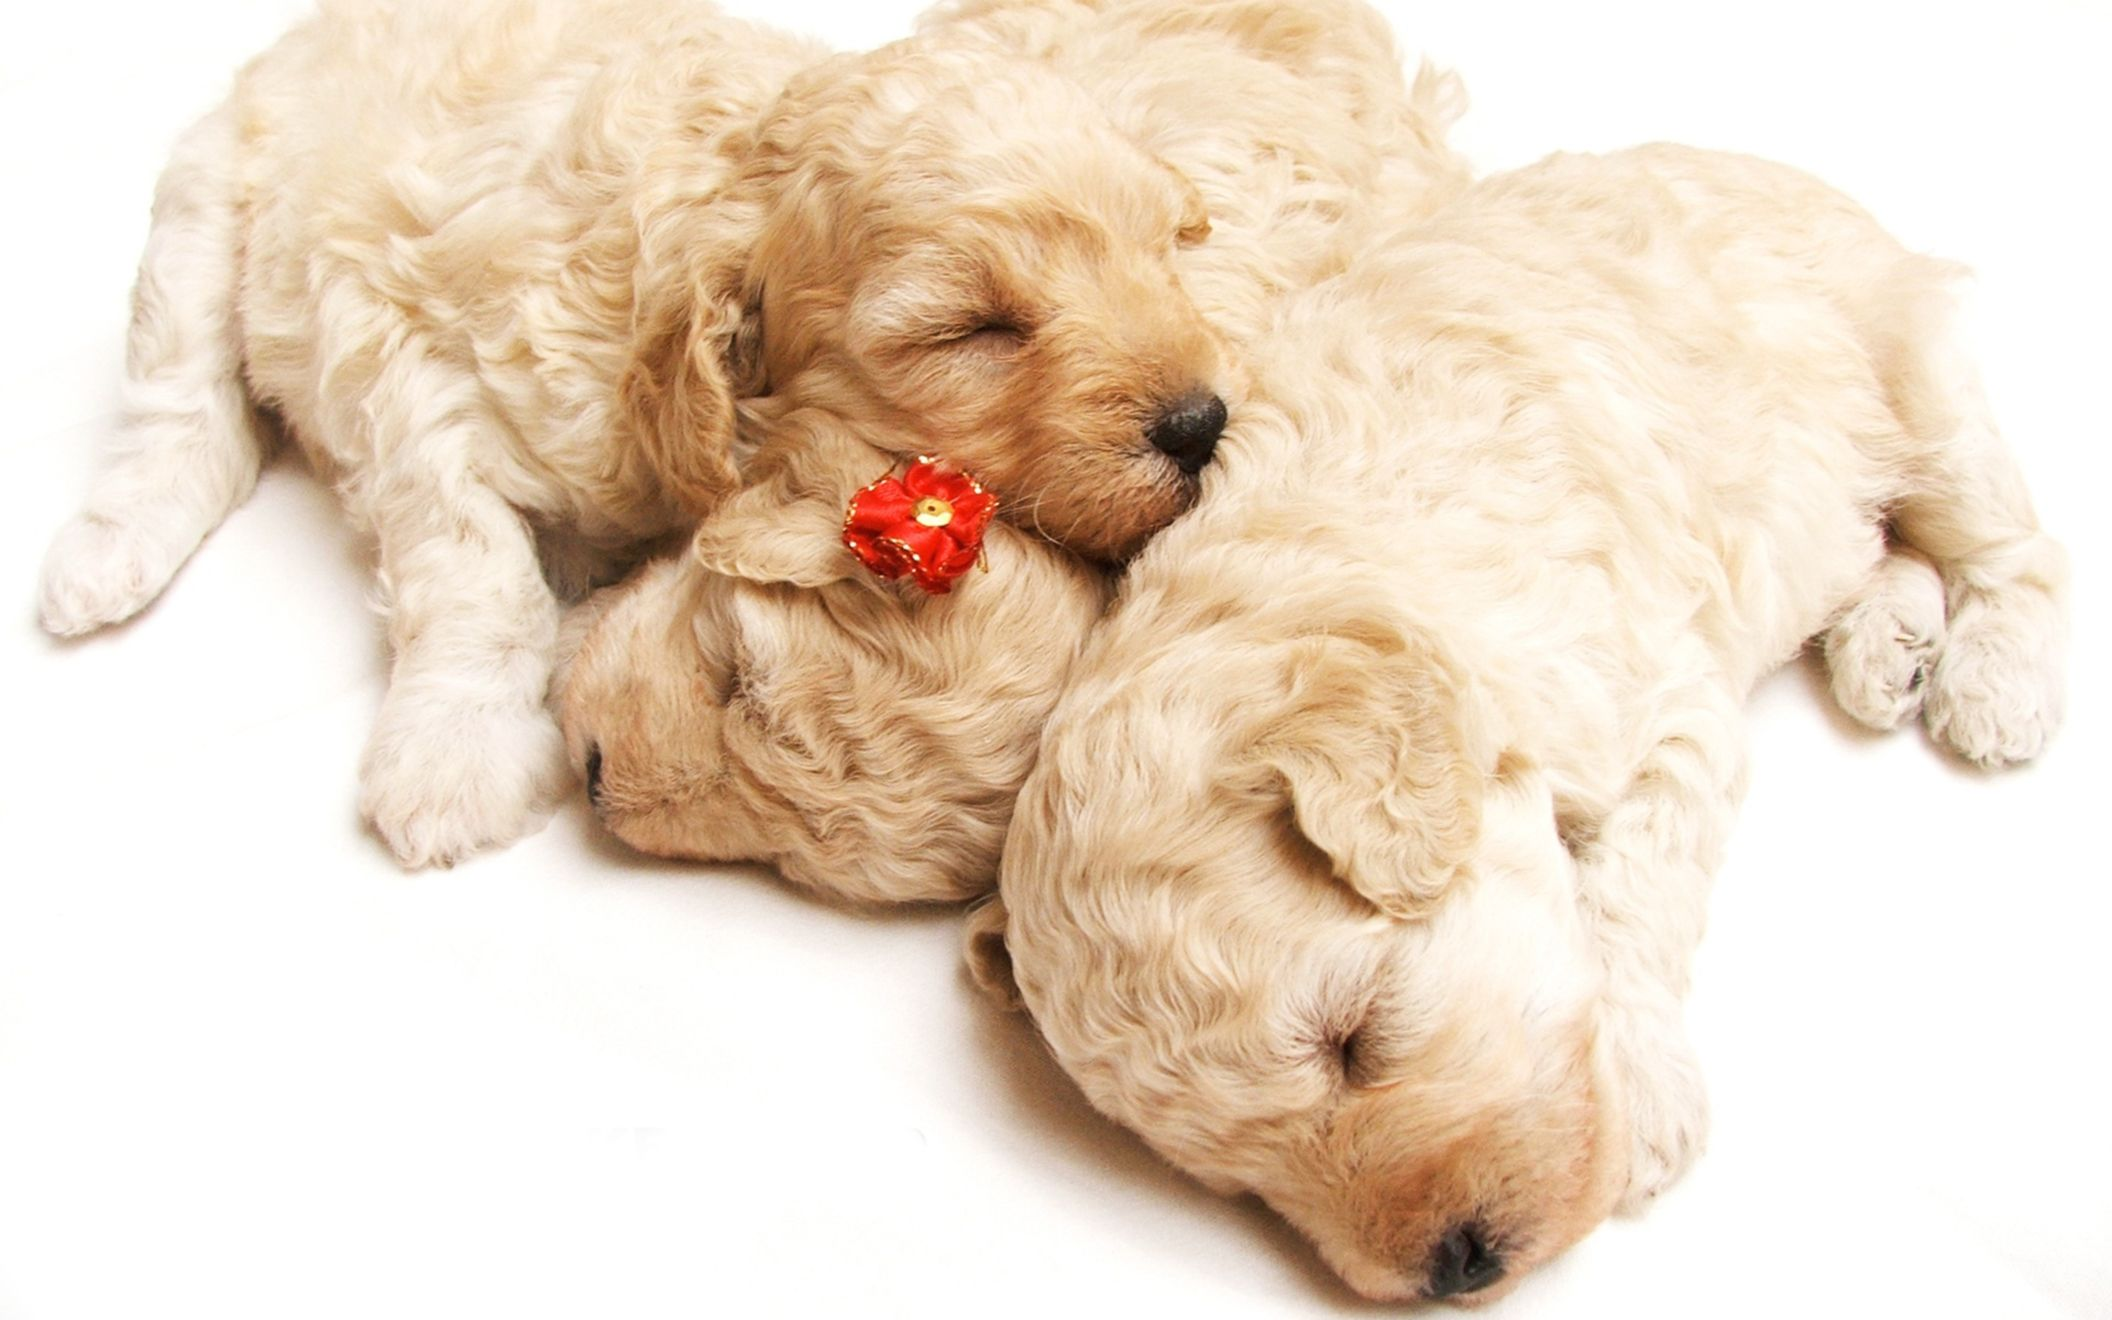 Download free HD Cute Sleeping Puppies Wide Wallpaper, image